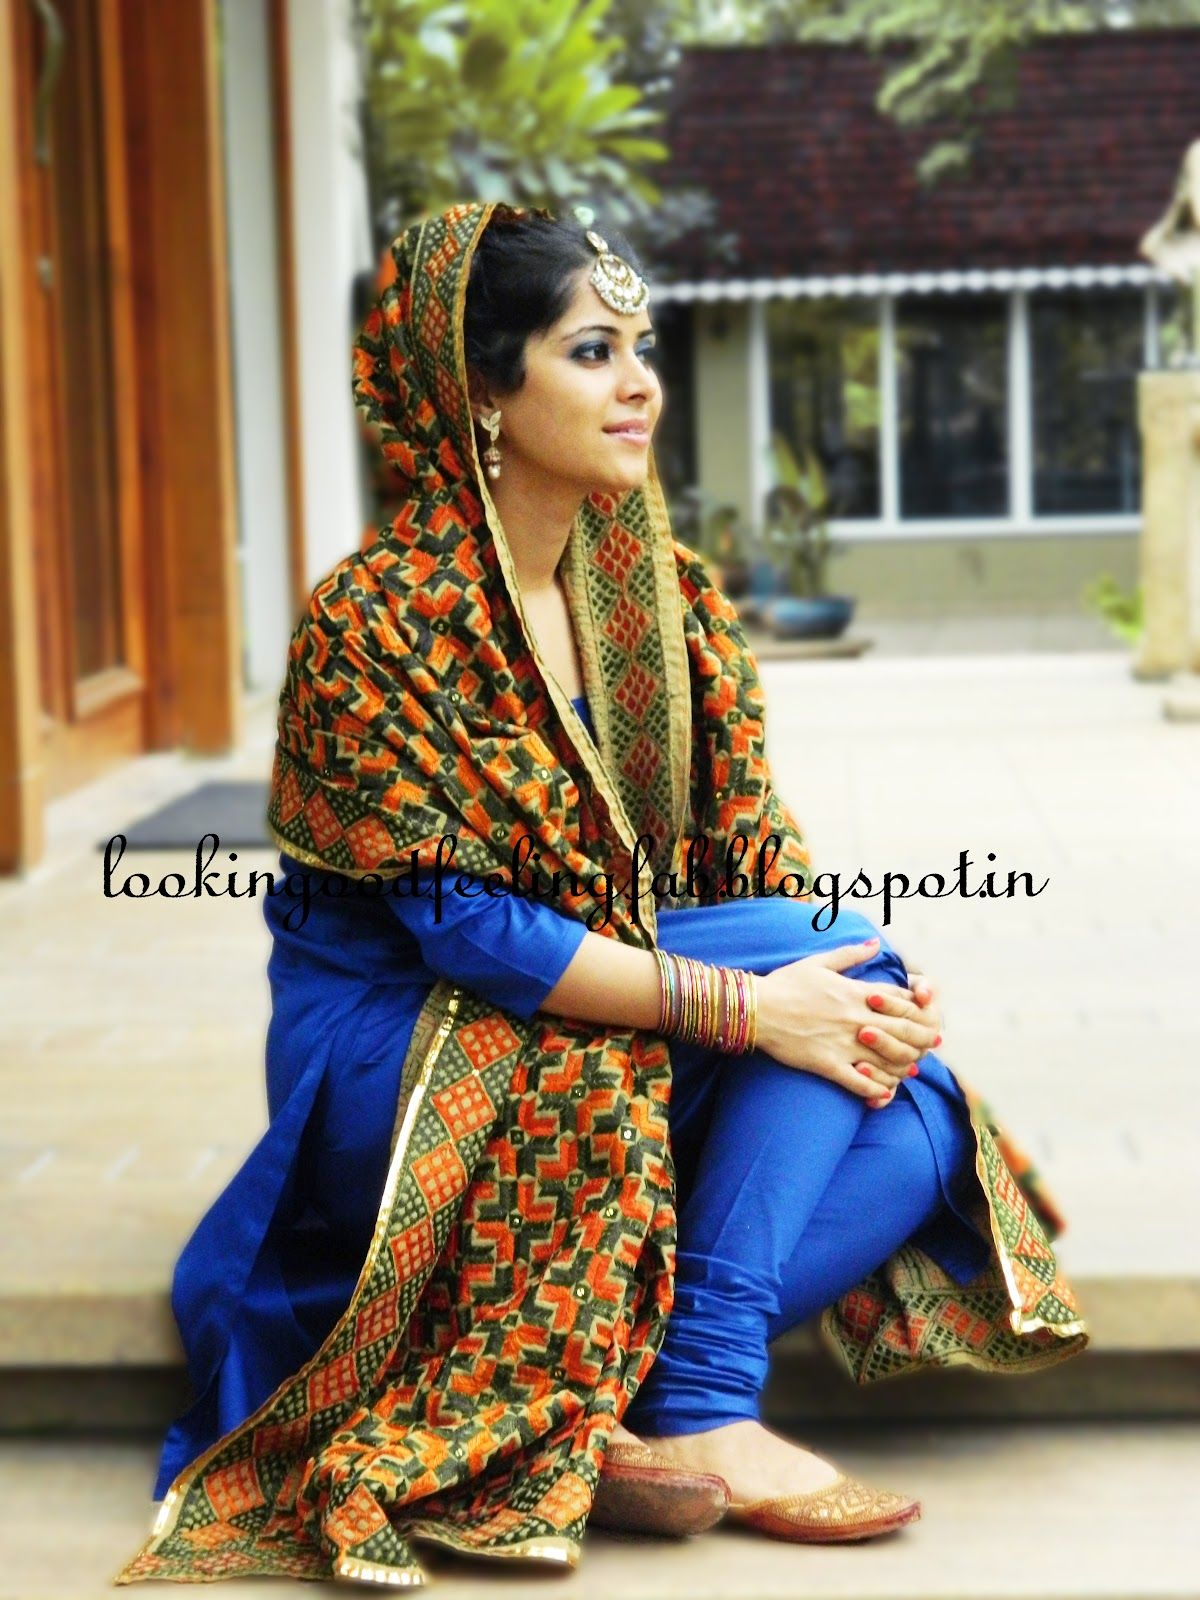 21c2c74376 Phulkari dupatta with any contrasting Colour suit. (Not these dupatta and  suit colours, not a long sleeved kameez)